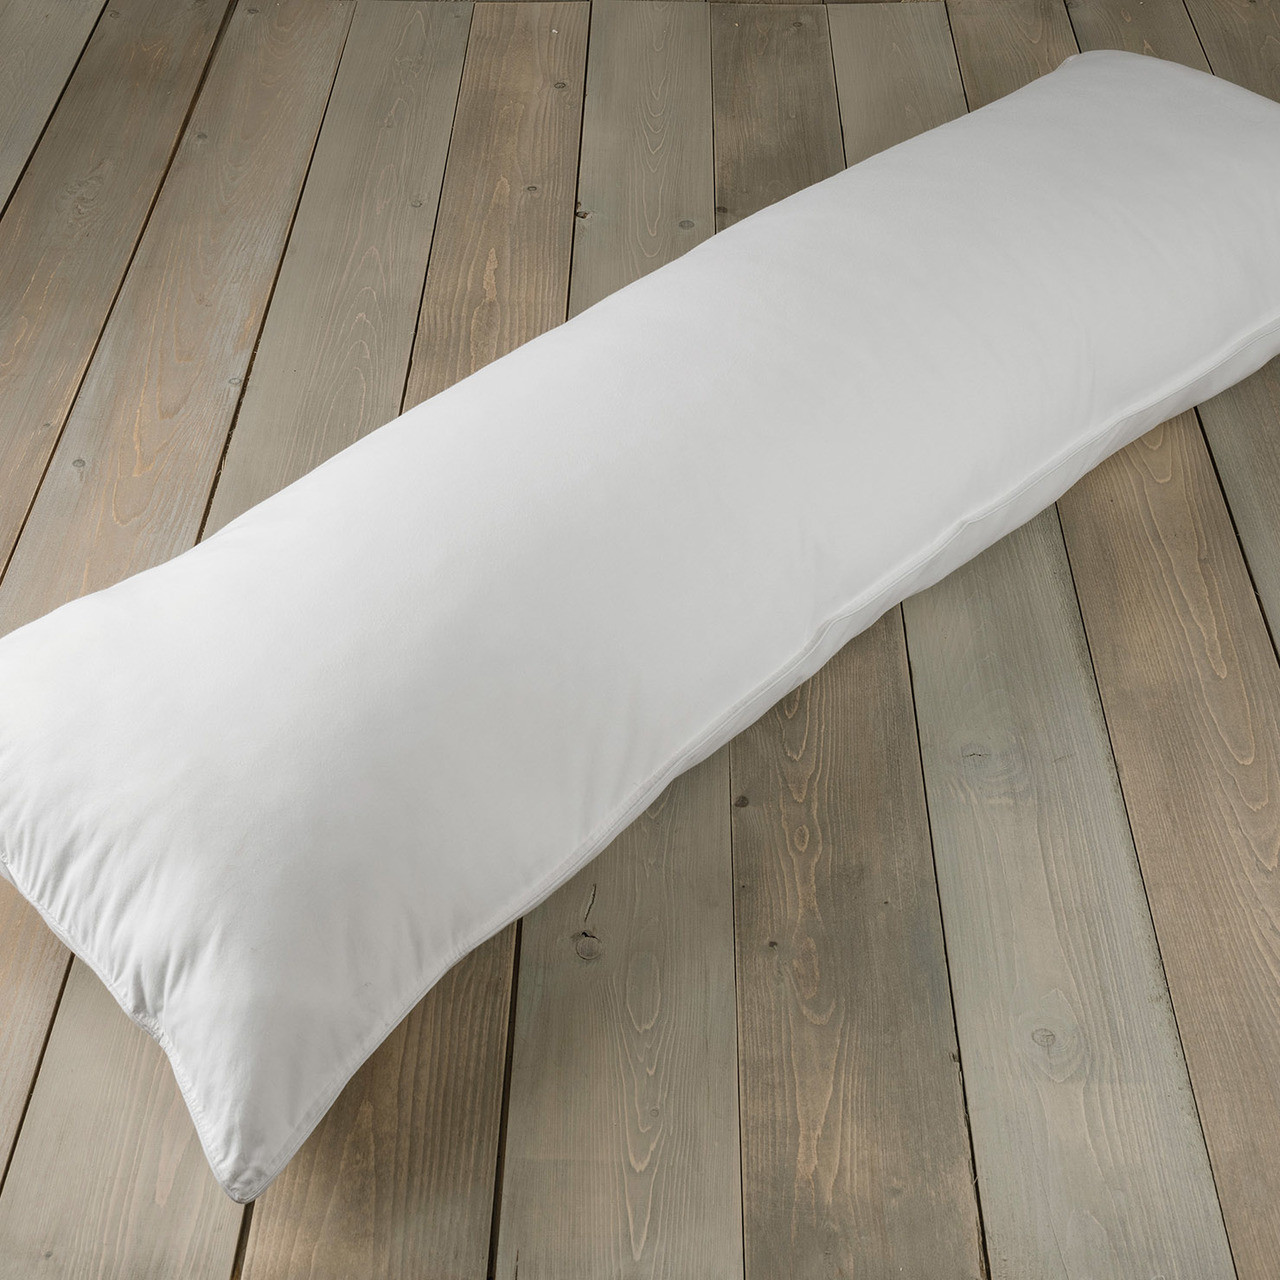 60 Inch Feel Like Down Bolster Pillow Feel Like Down